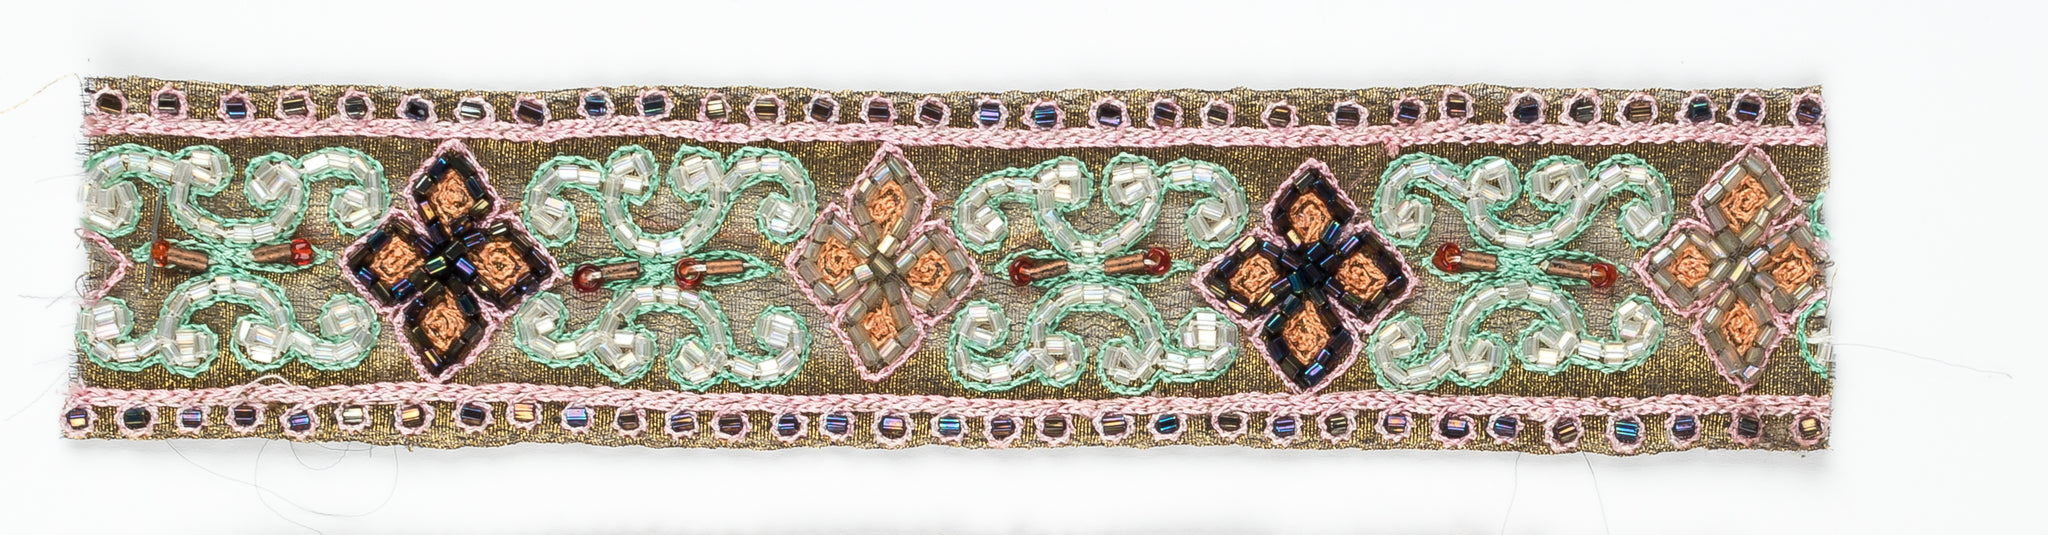 Floral Shaped Handcrafted Indian Trim with Straw Beaded Petals - Target Trim